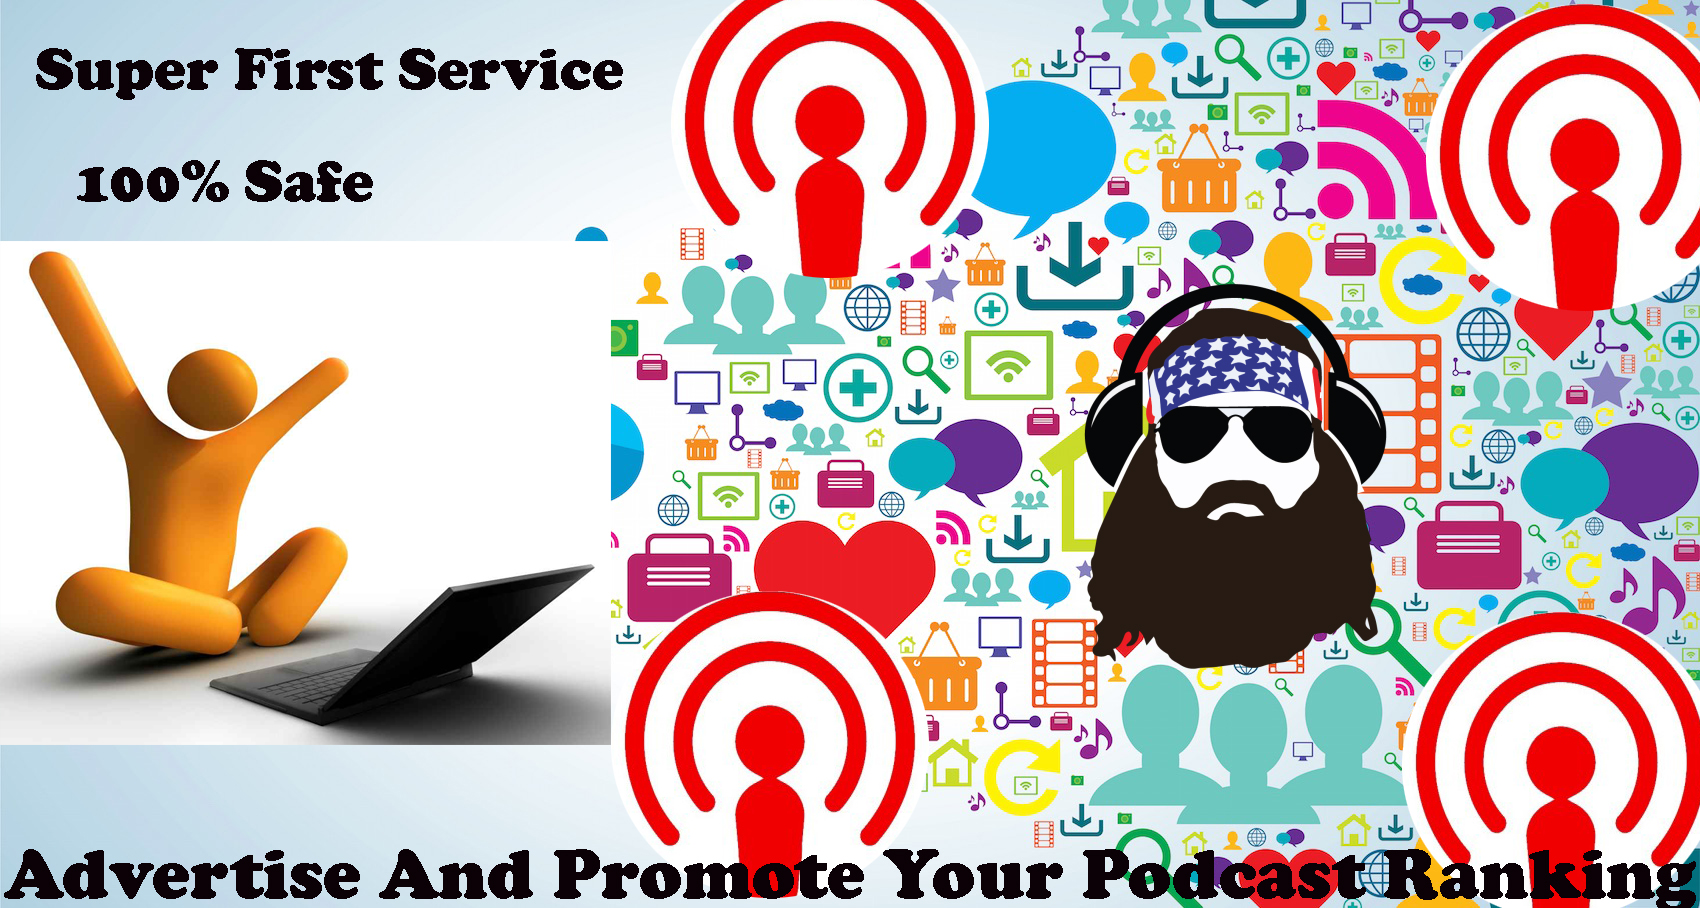 Advertise And Promote Your Podcast Ranking